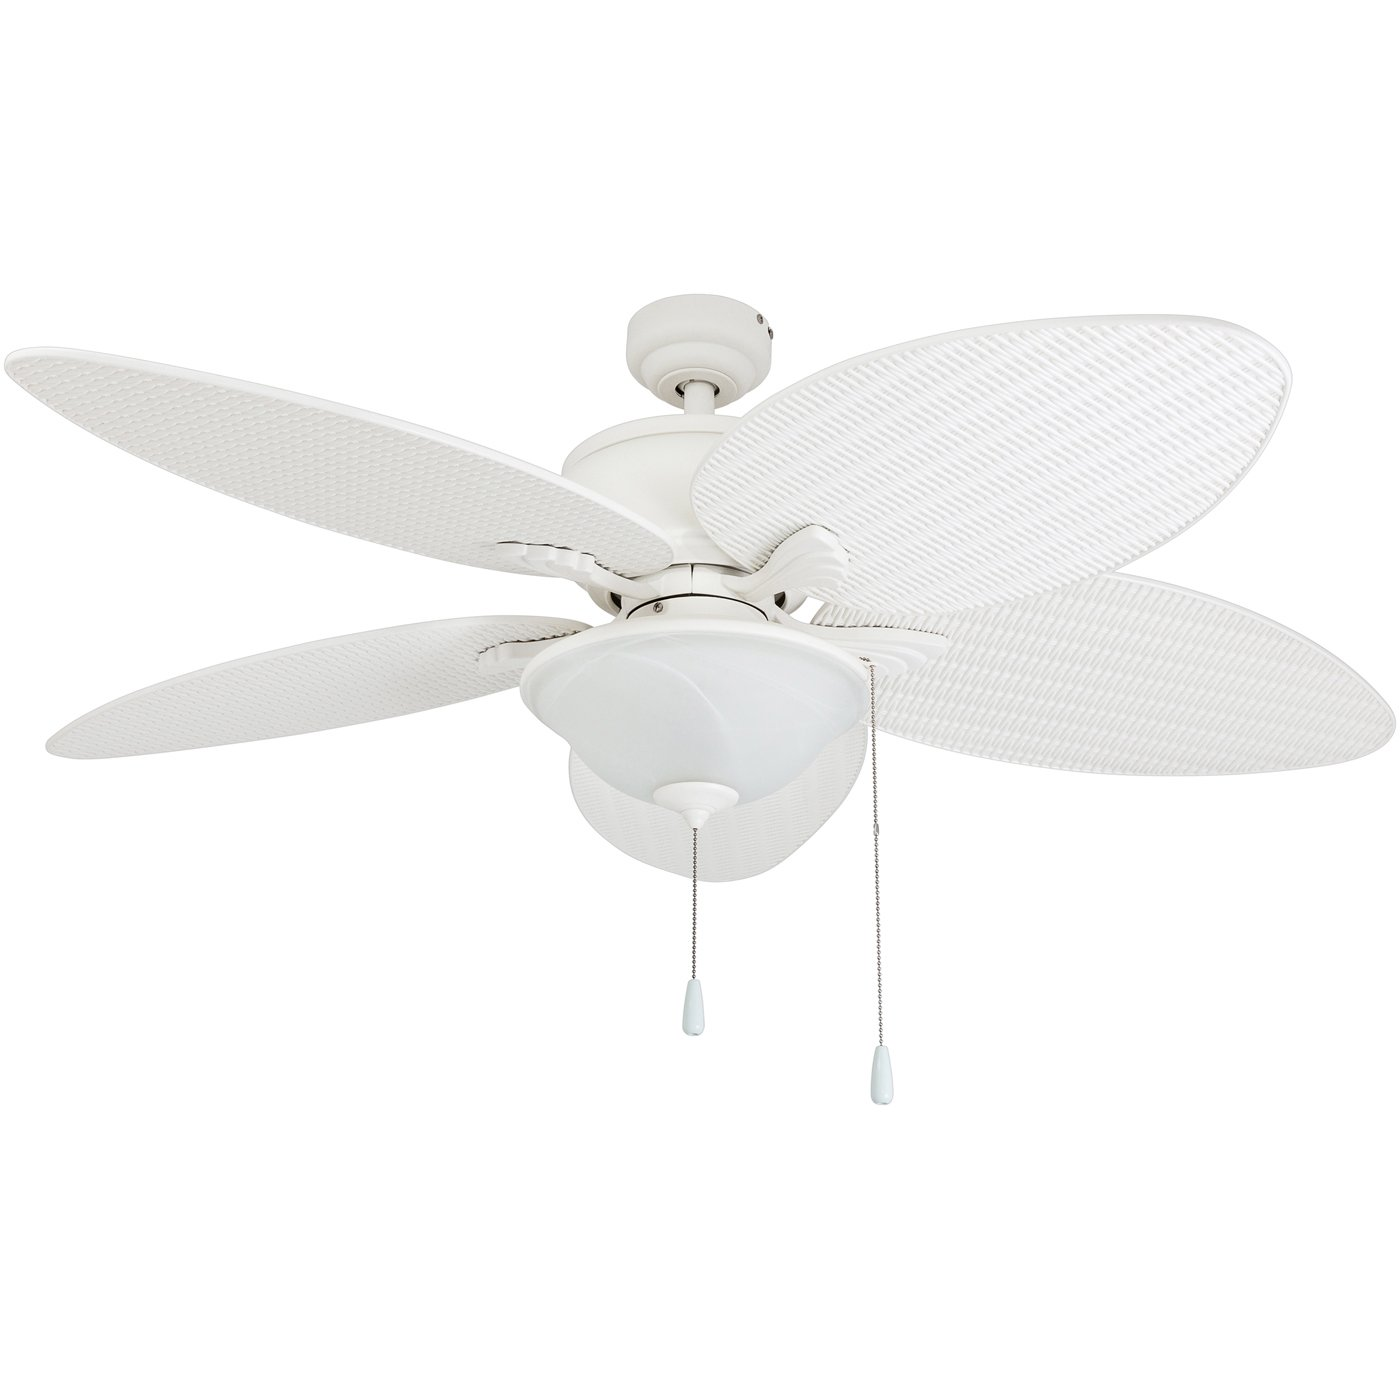 Prominence Home 80018-01 Solona Ceiling Fan Blade, 52 inches, White